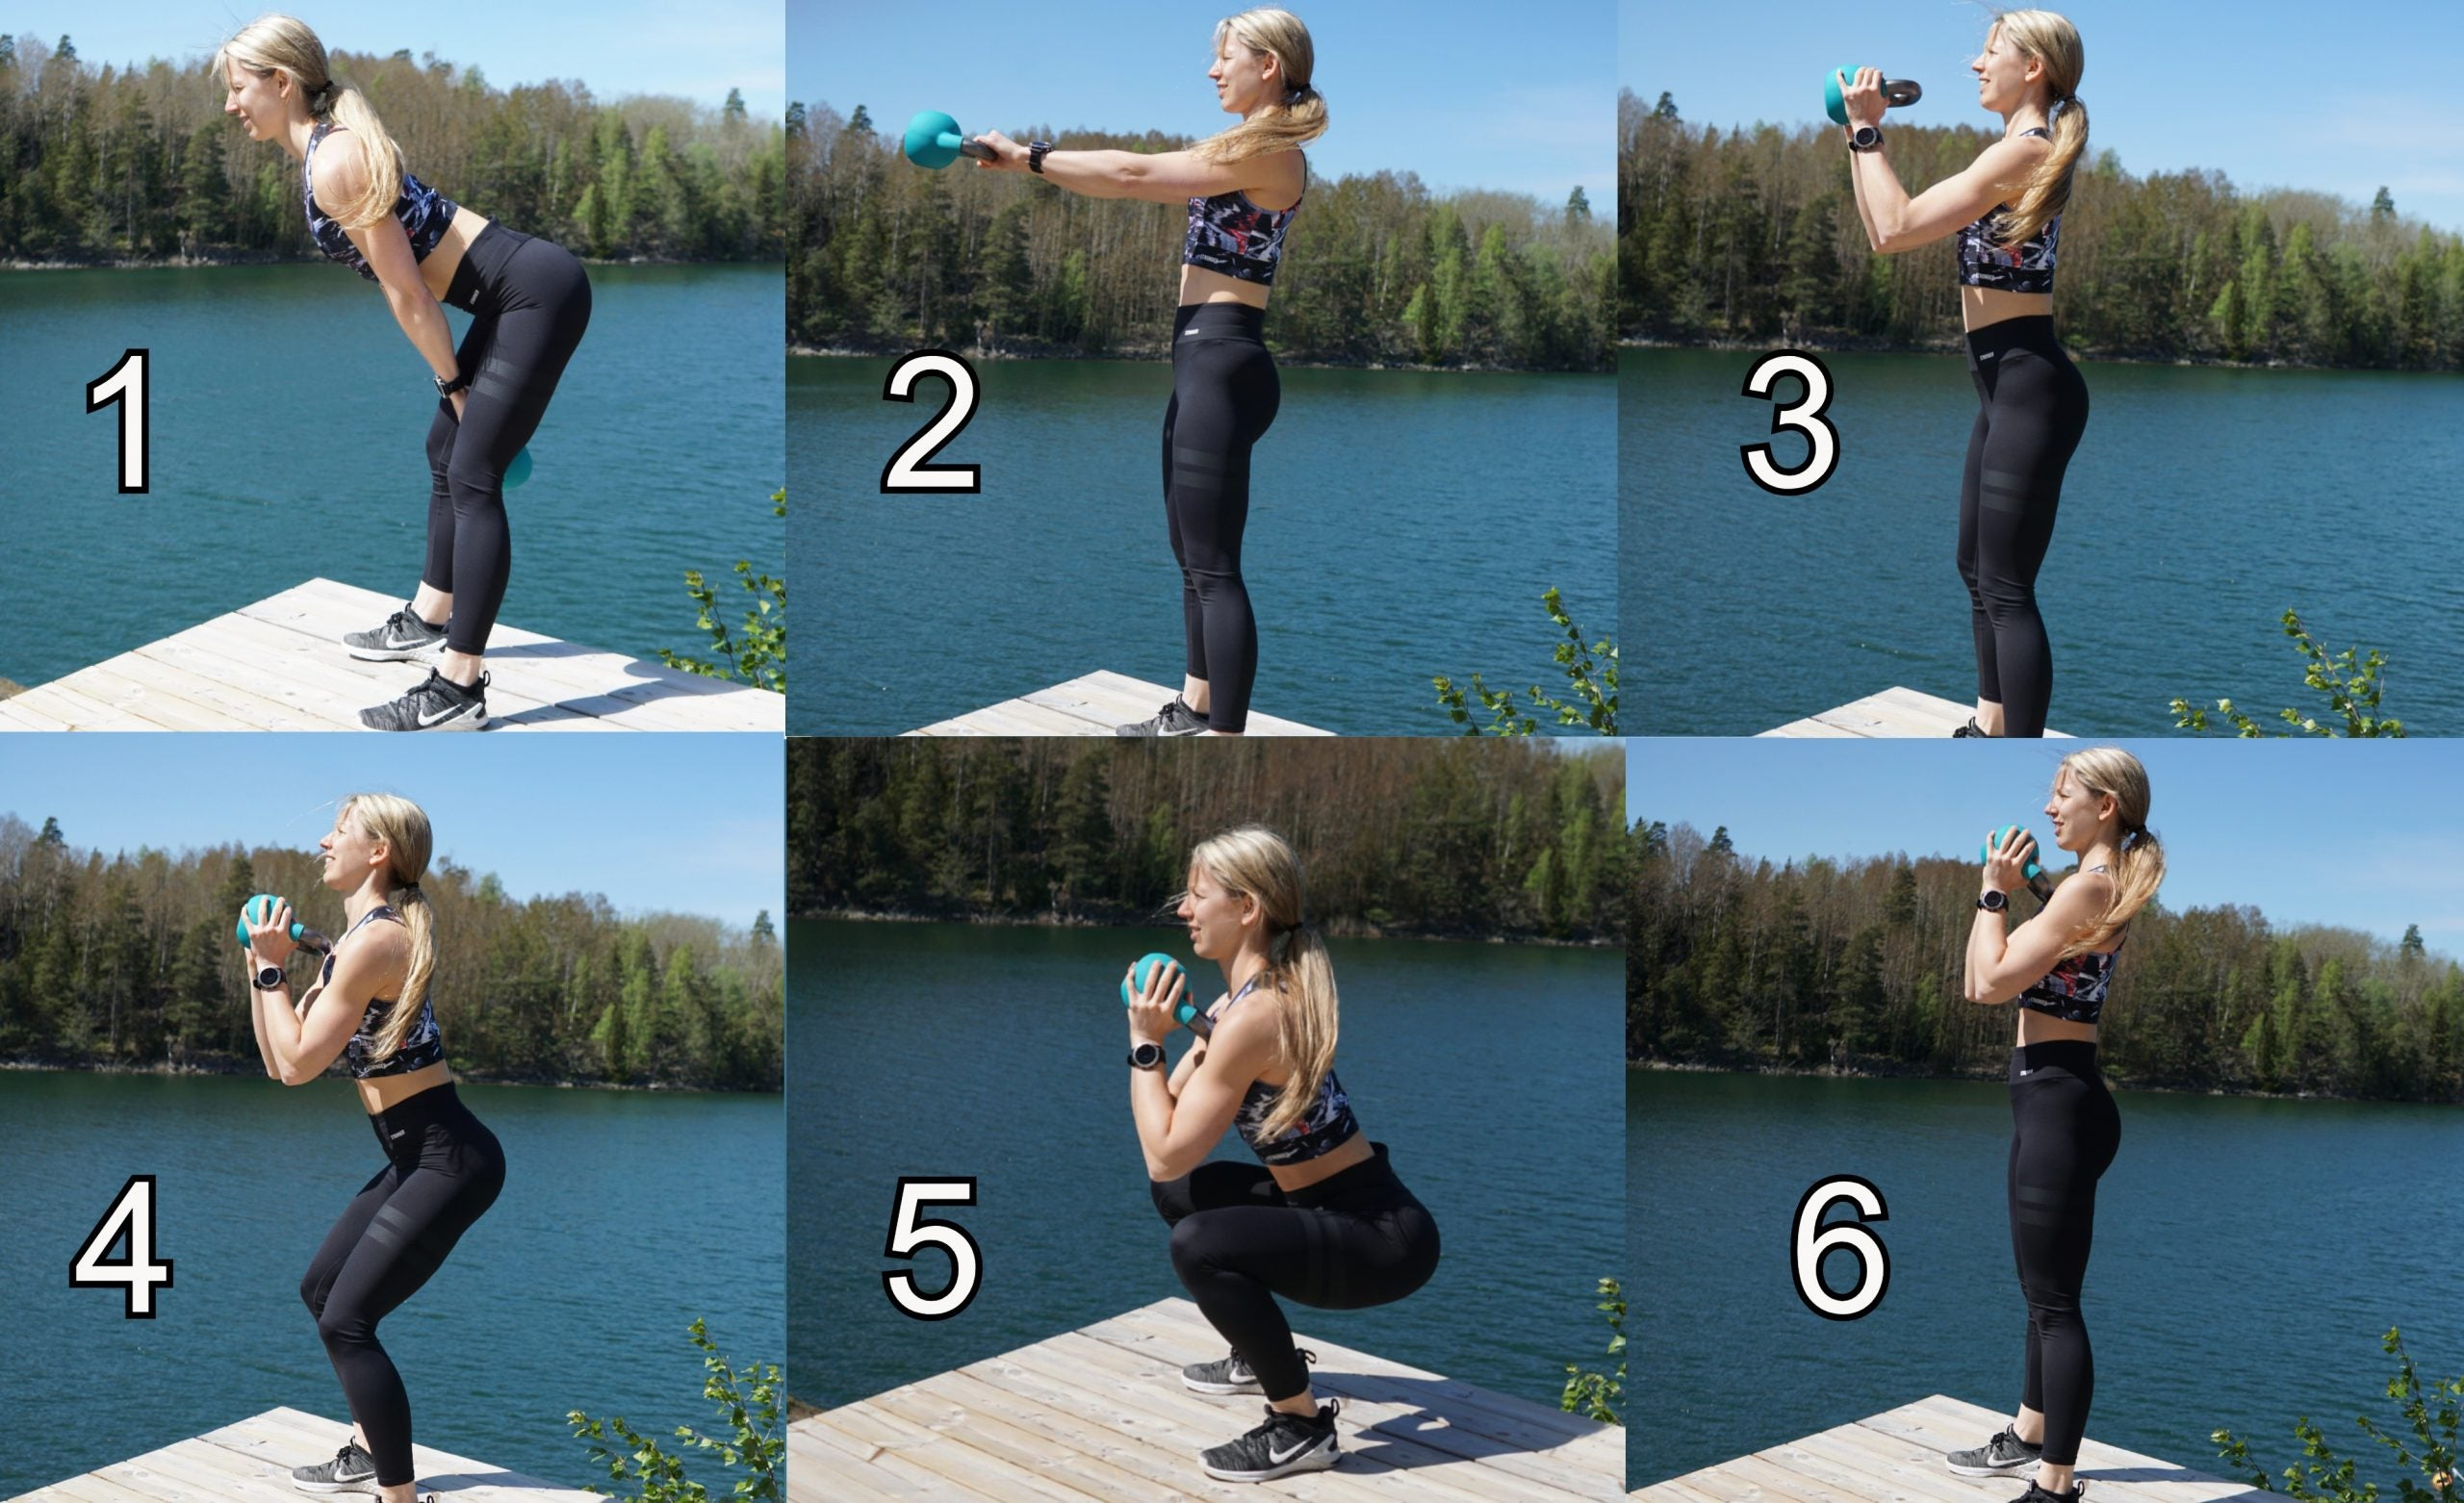 Modified Kettlebell Swing to Squat